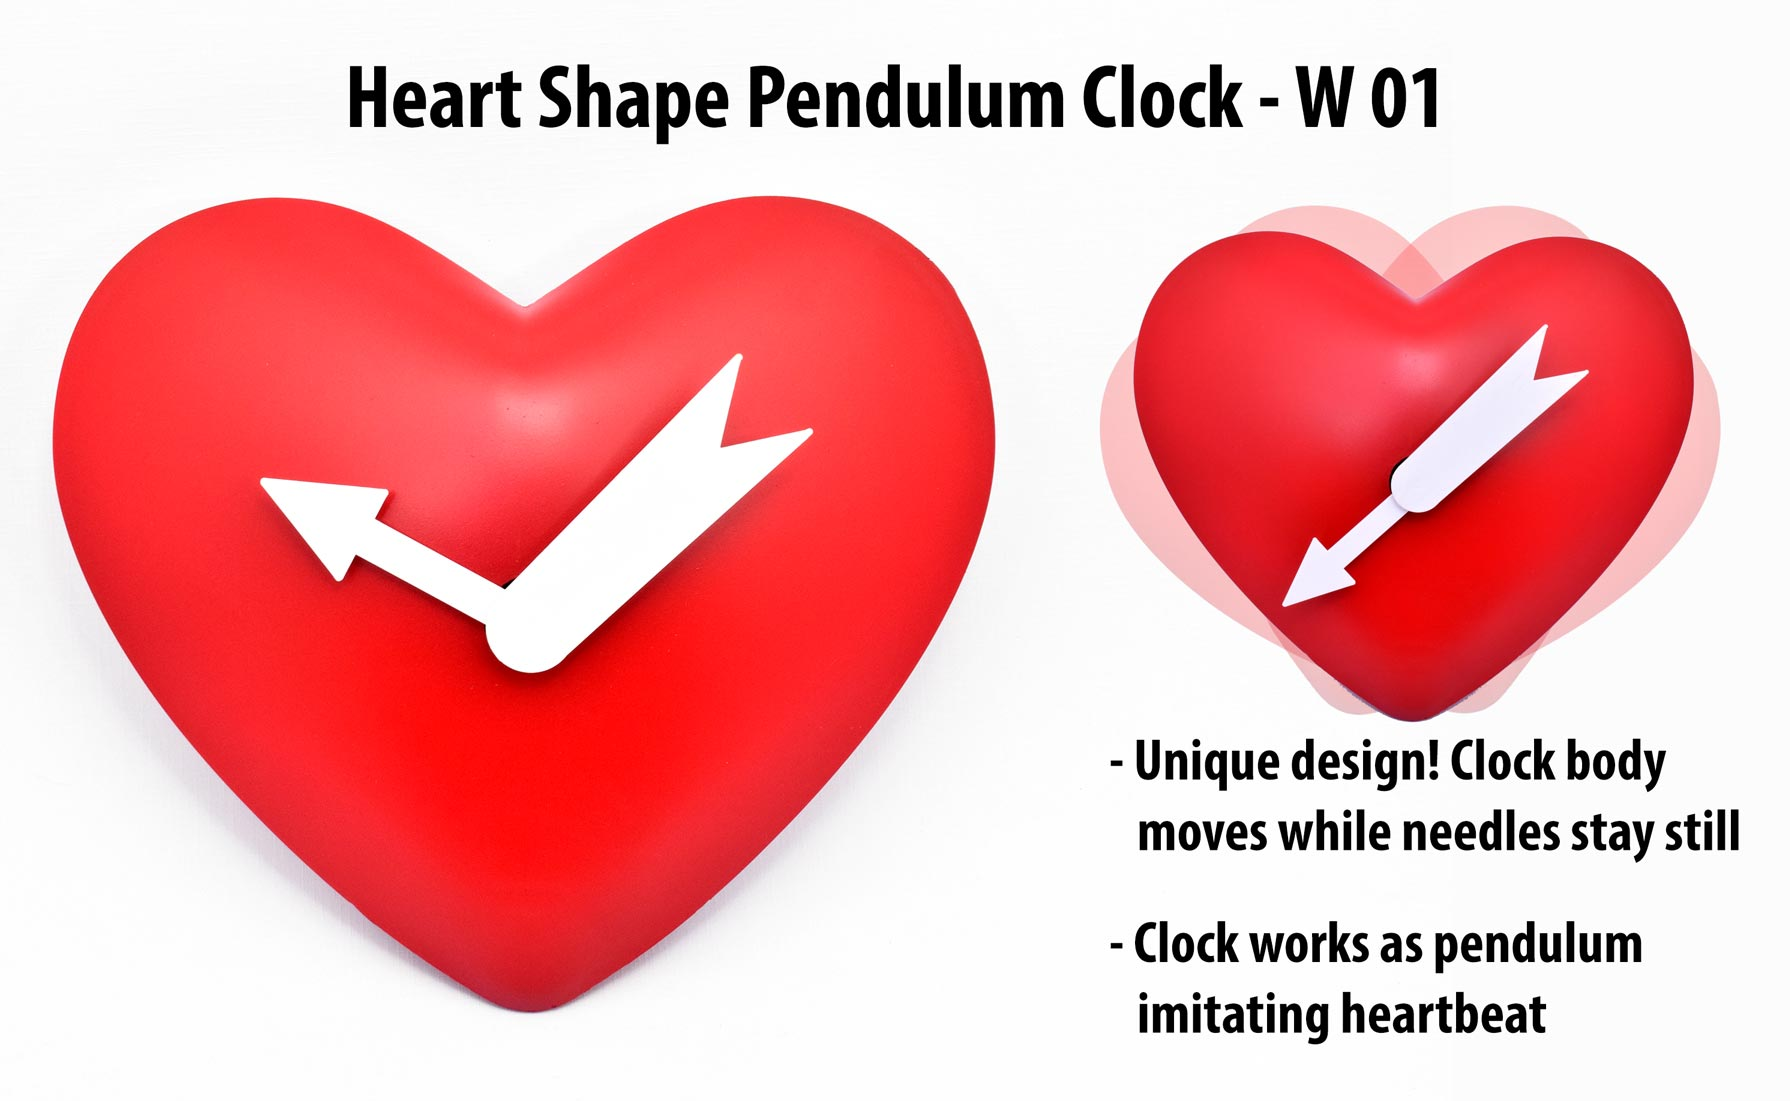 W01 - Heart Shape Pendulum Clock